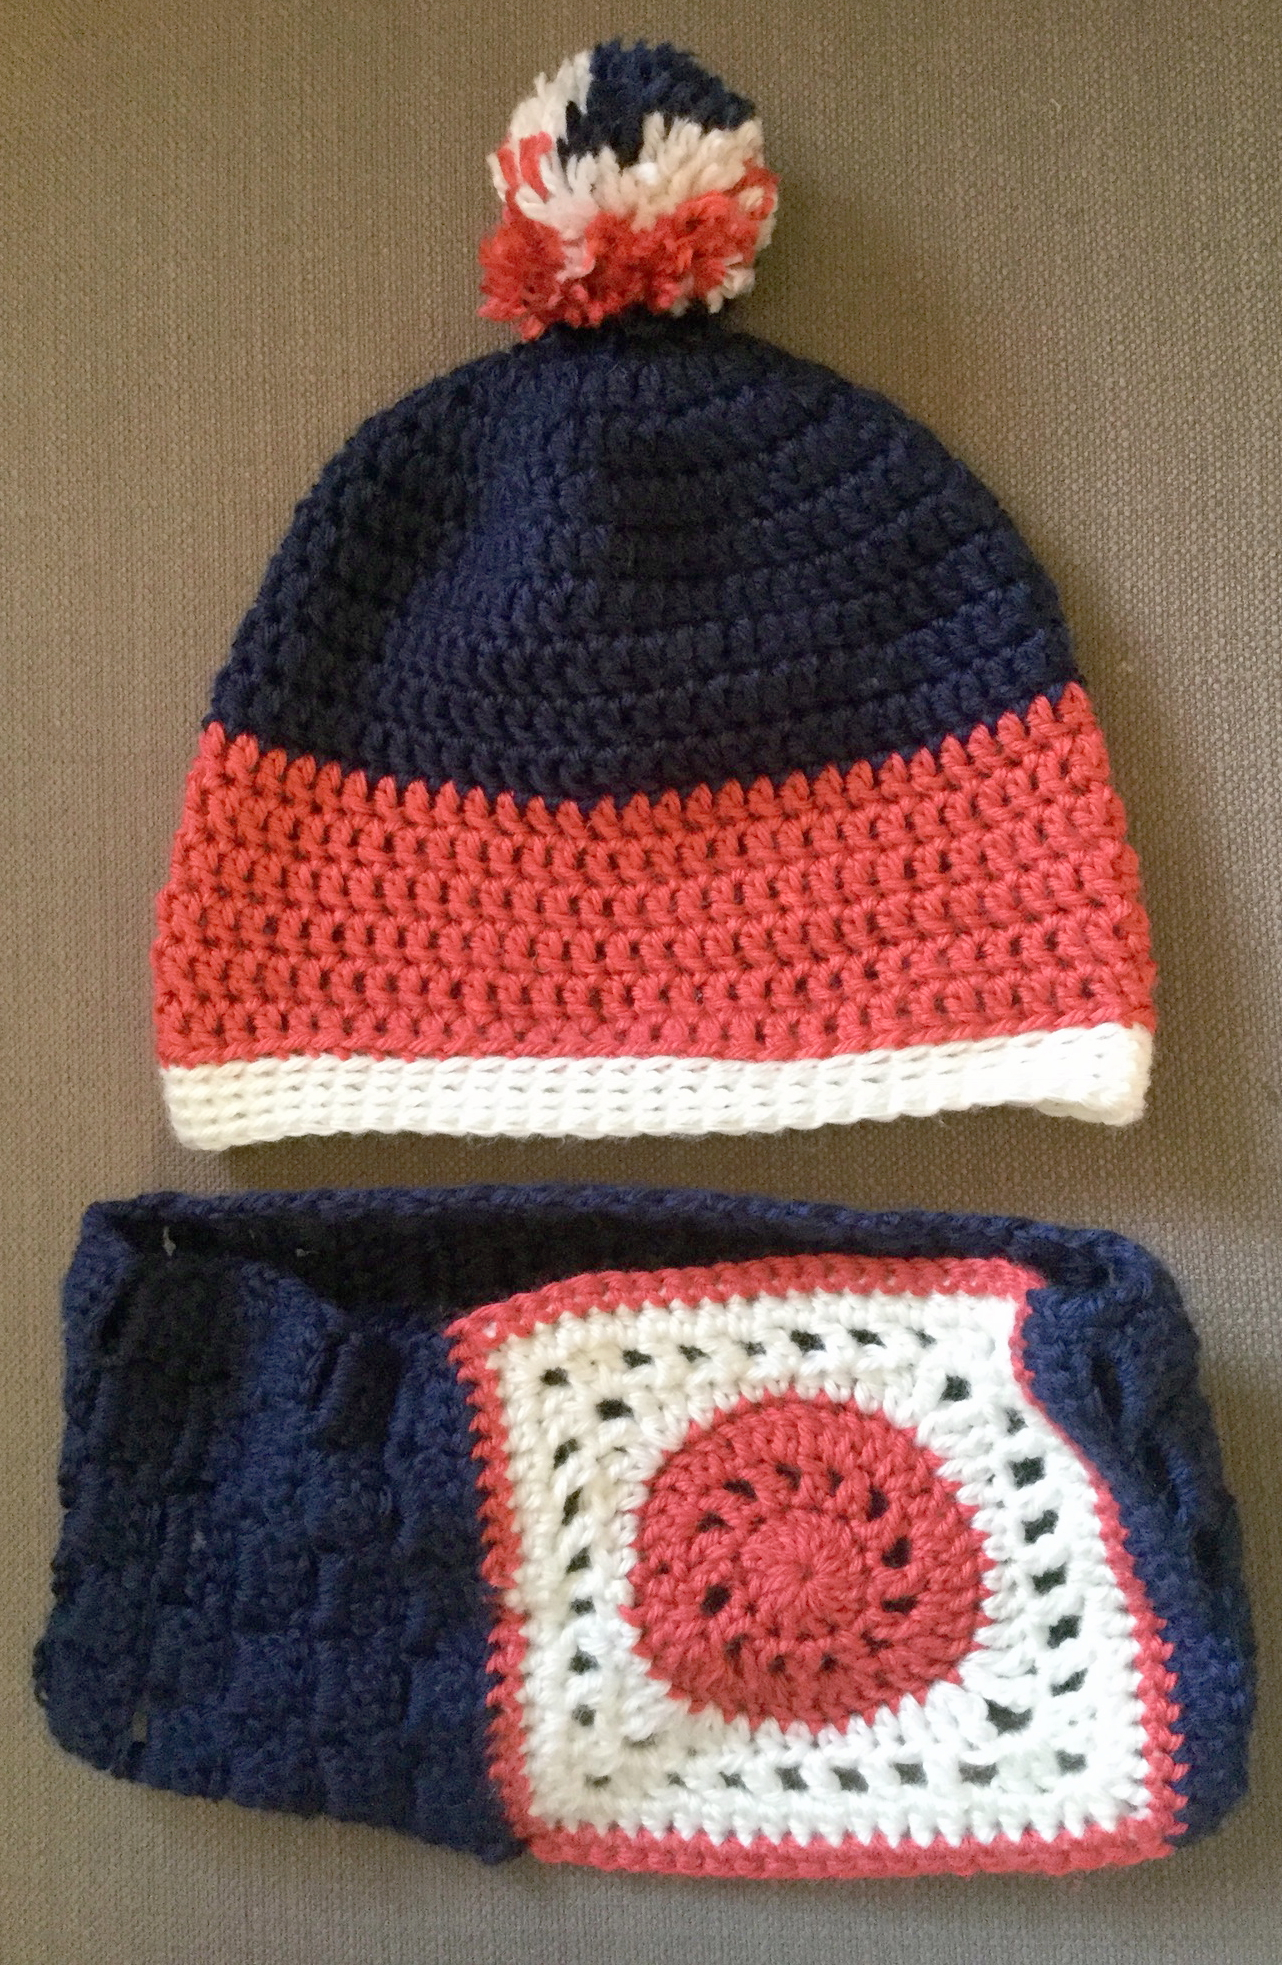 My first pom-pom hat - and I really liked experimenting with the granny square/brick stitch combo cowl